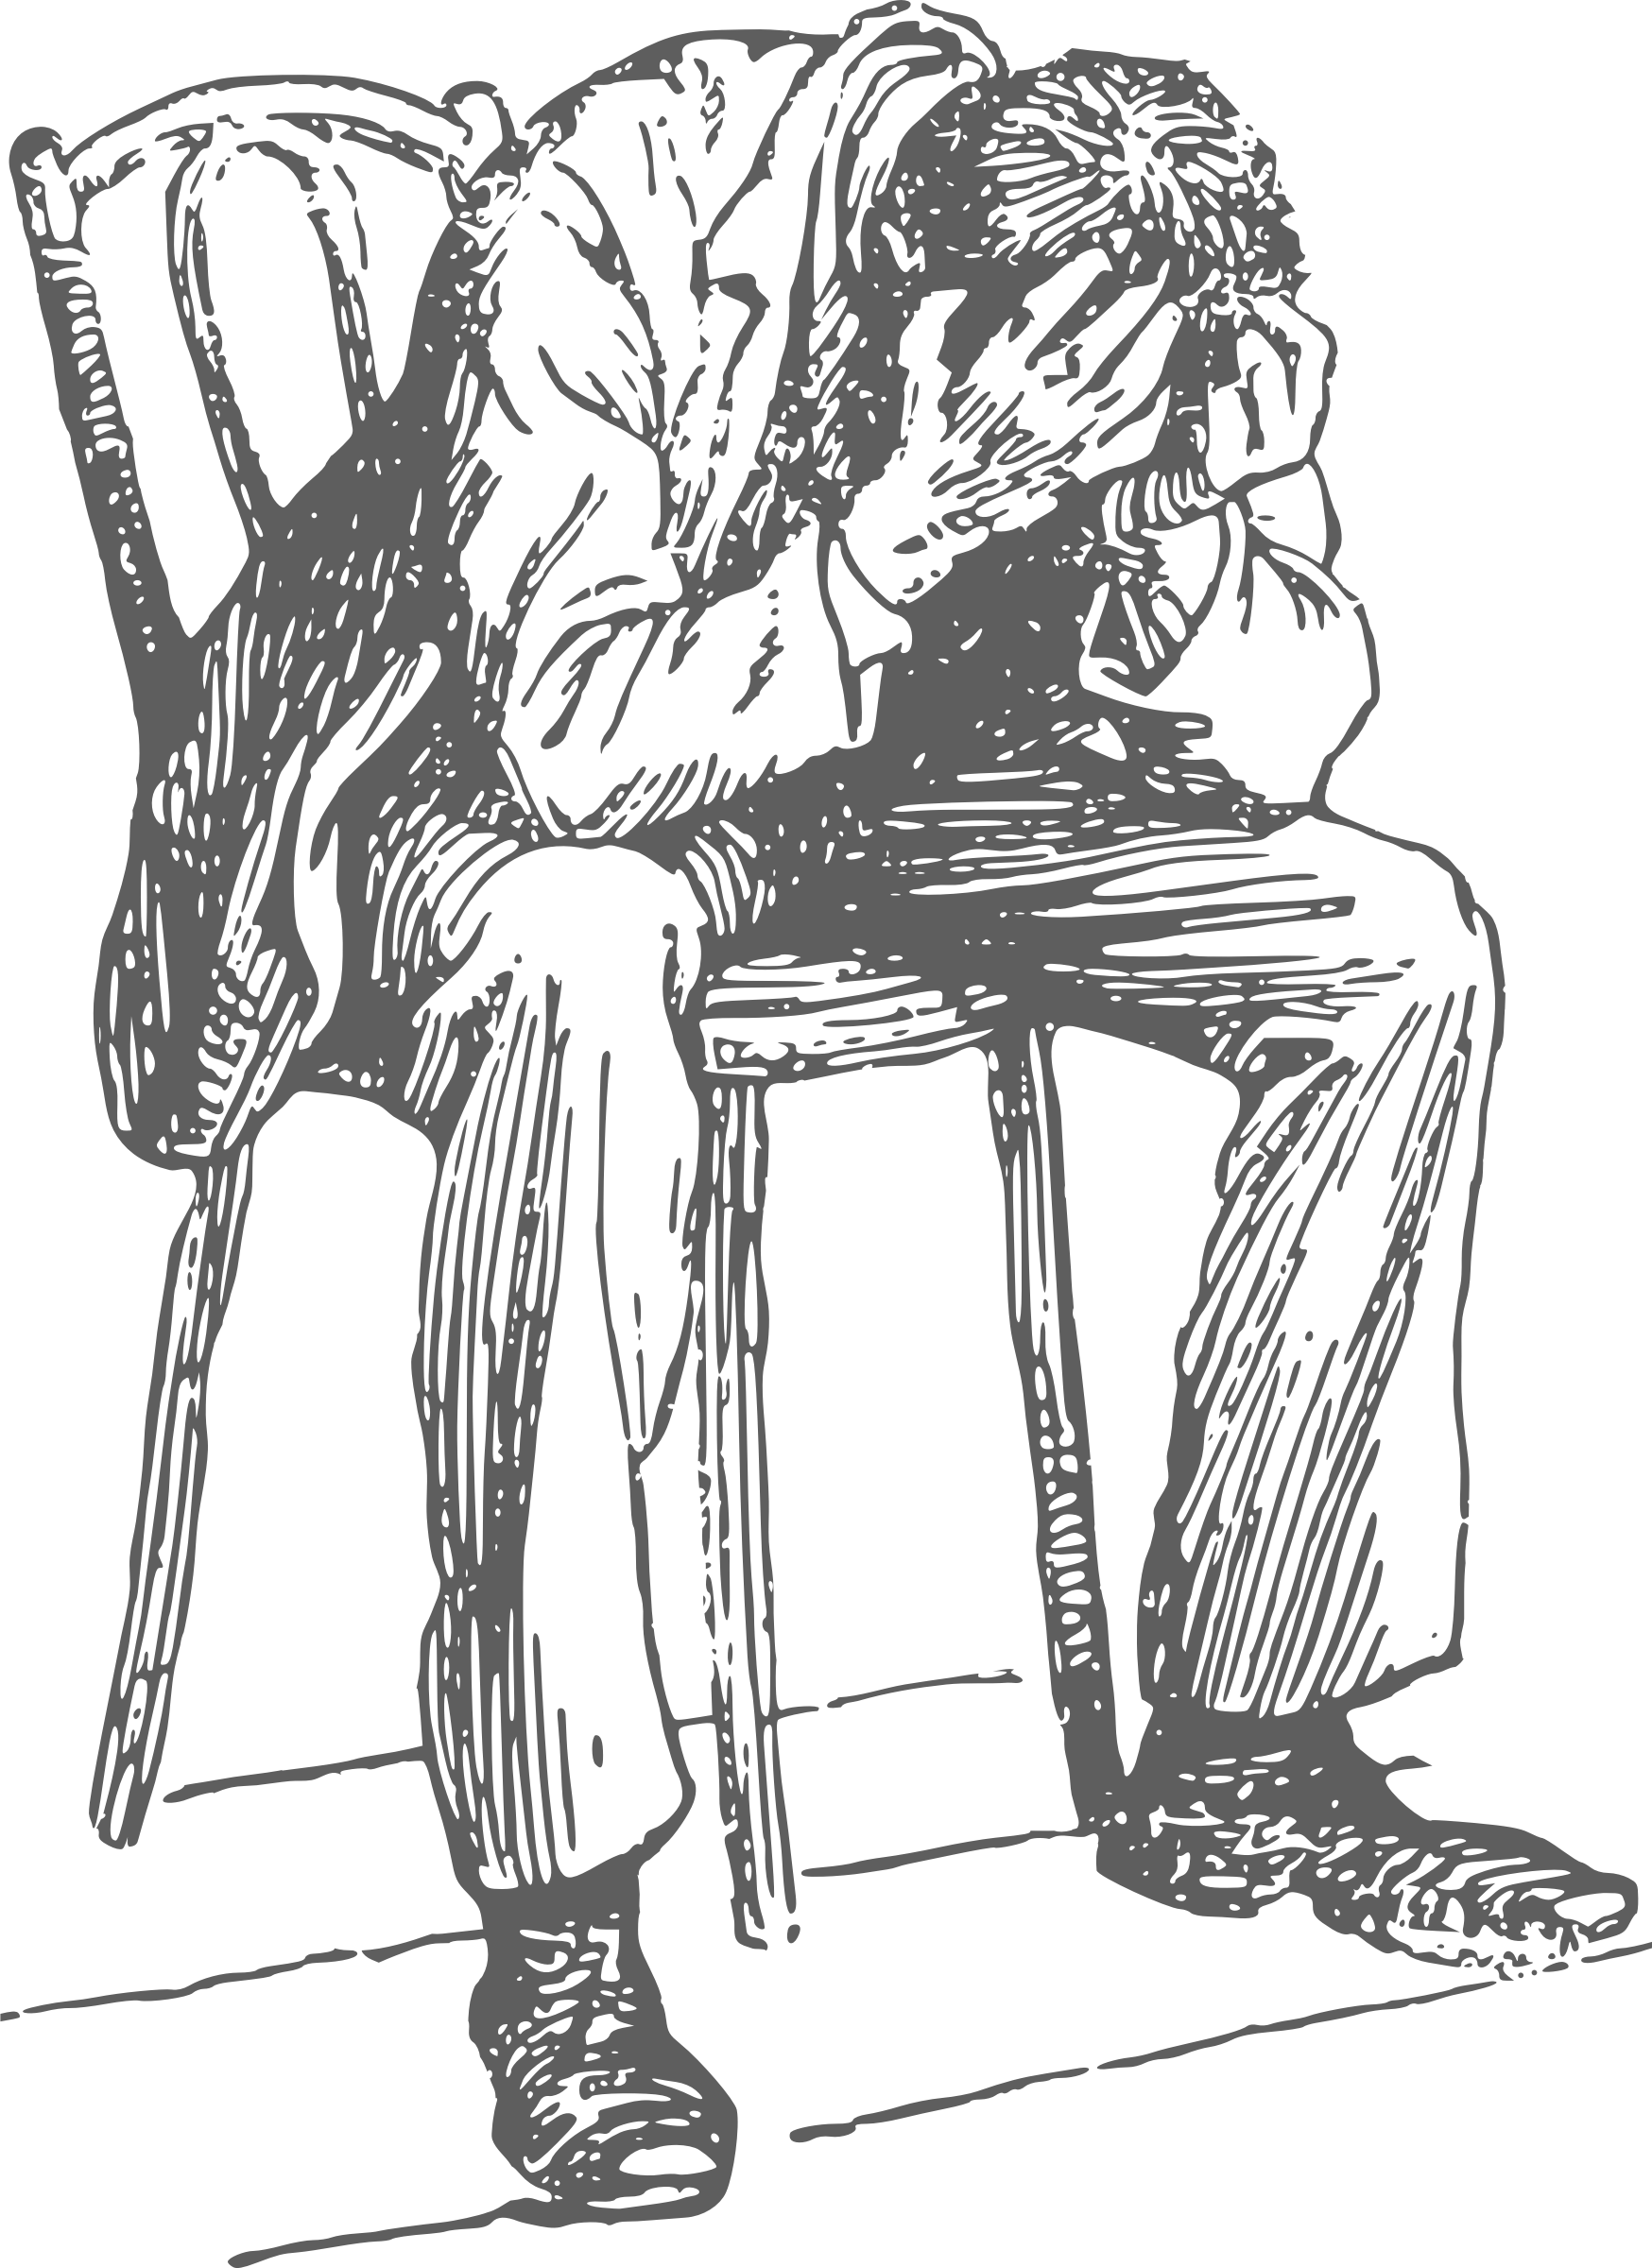 Desperate big image png. Clipart chair man